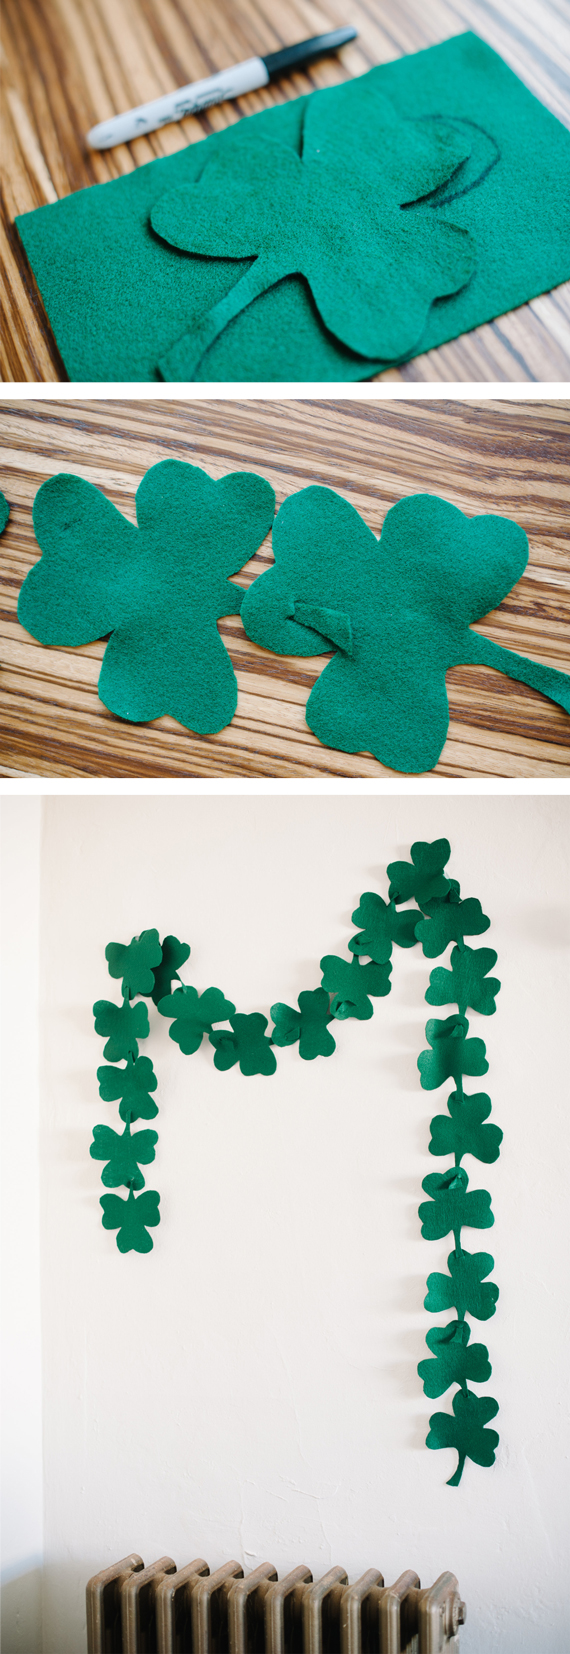 How to make a St. Patrick's day garland